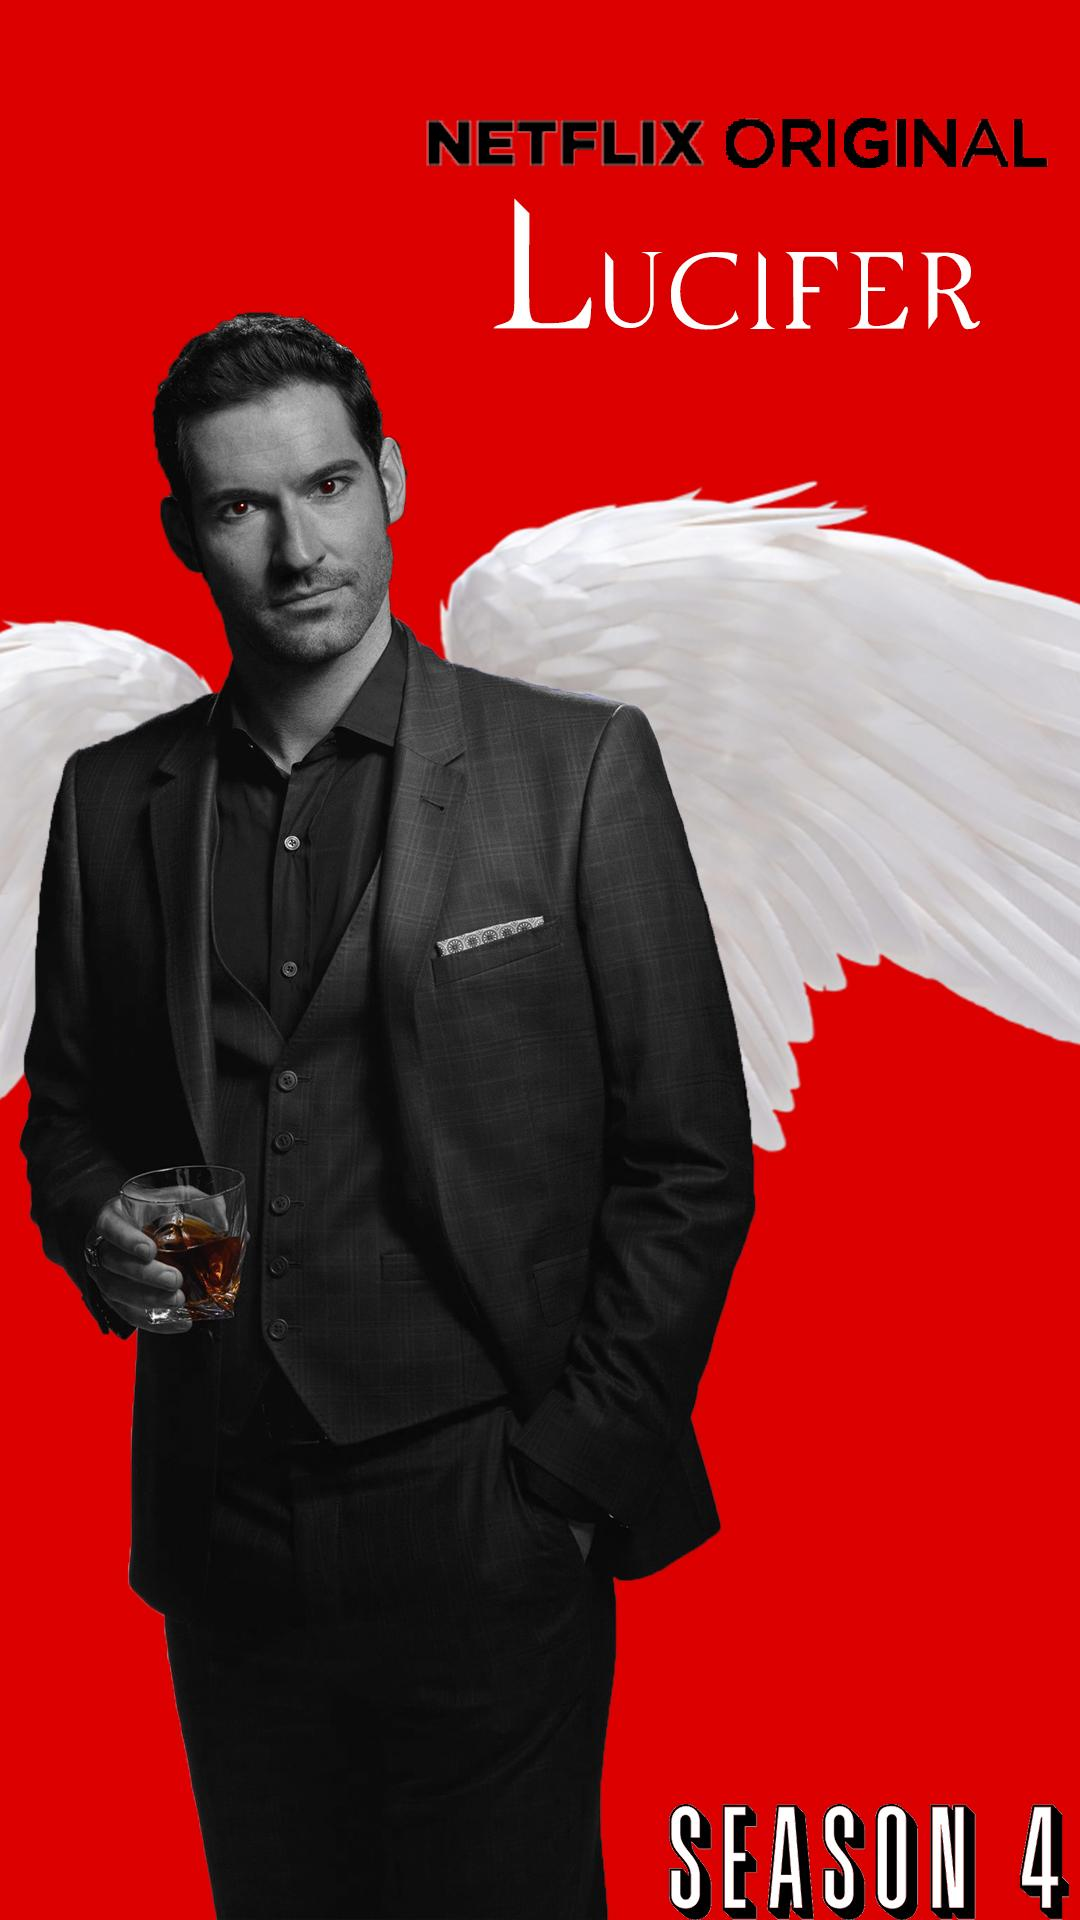 Netflix Lucifer Wallpapers Top Free Netflix Lucifer Backgrounds Wallpaperaccess